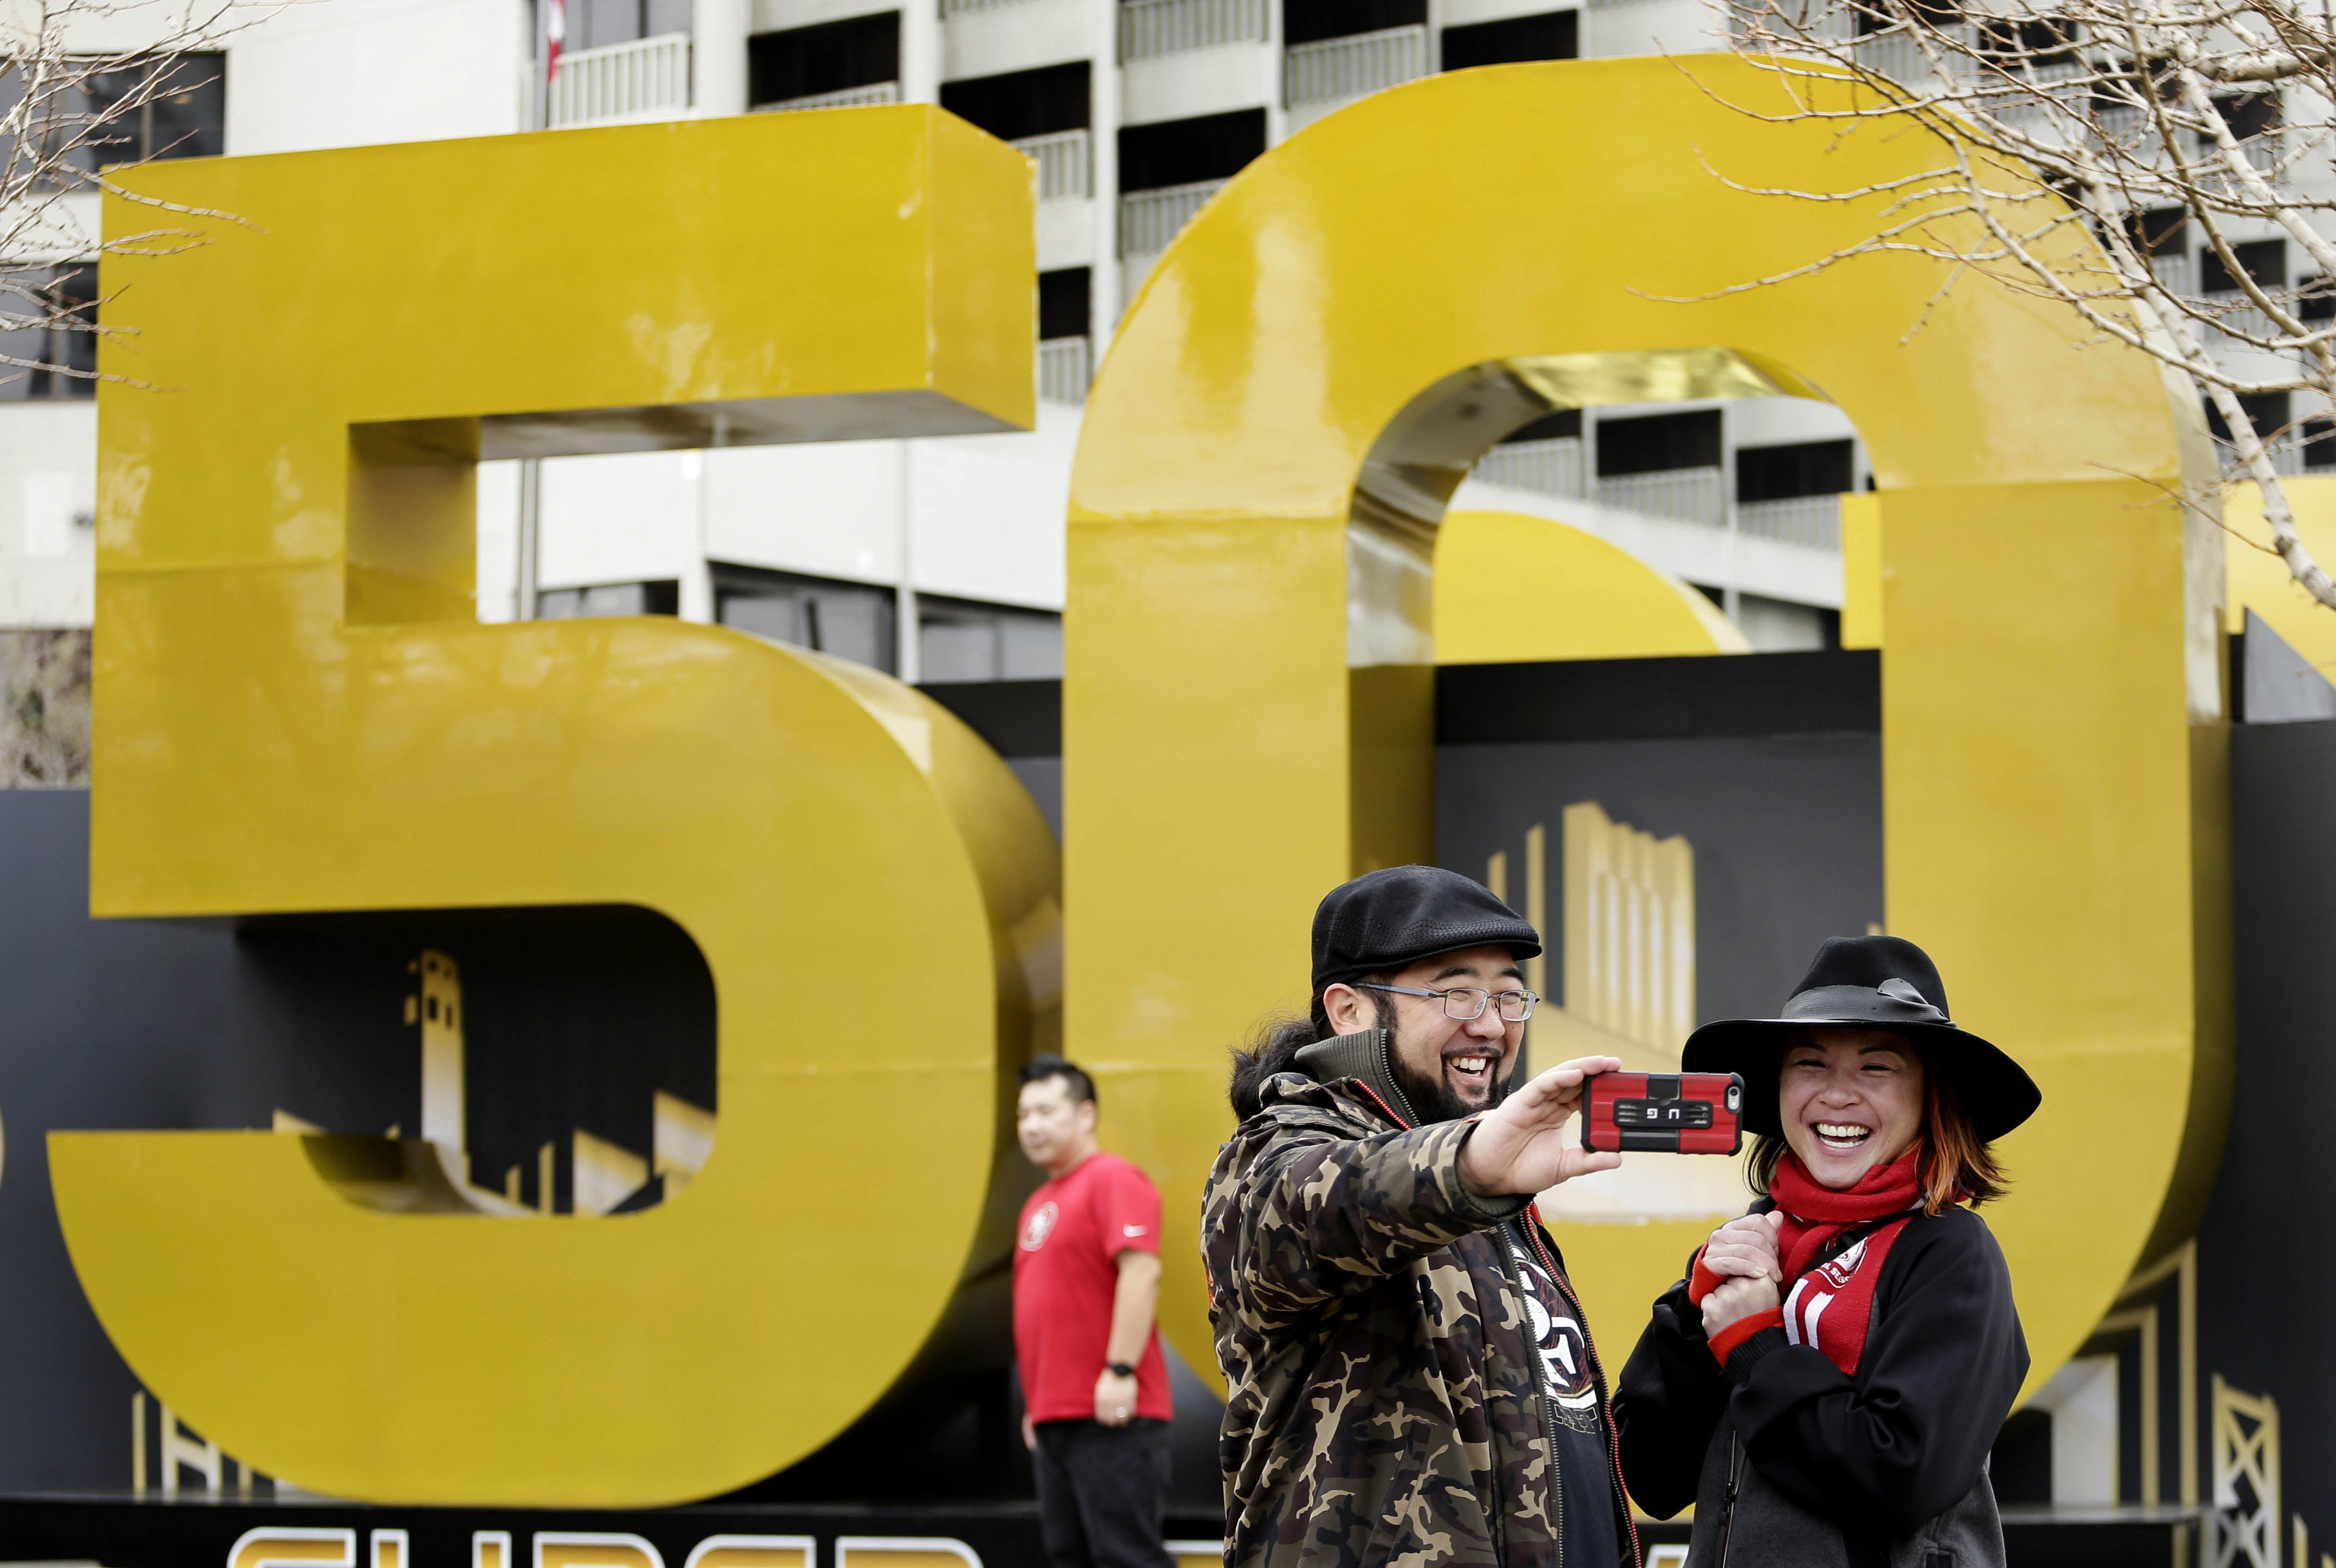 FILE - In this Feb. 3, 2016 file photo, Carissa Lou and Marc Shimamoto pose for a selfie in front of a Super Bowl 50 sign at Super Bowl City in San Francisco. San Francisco netted nearly $2 million from co-hosting the Super Bowl, with money coming largely